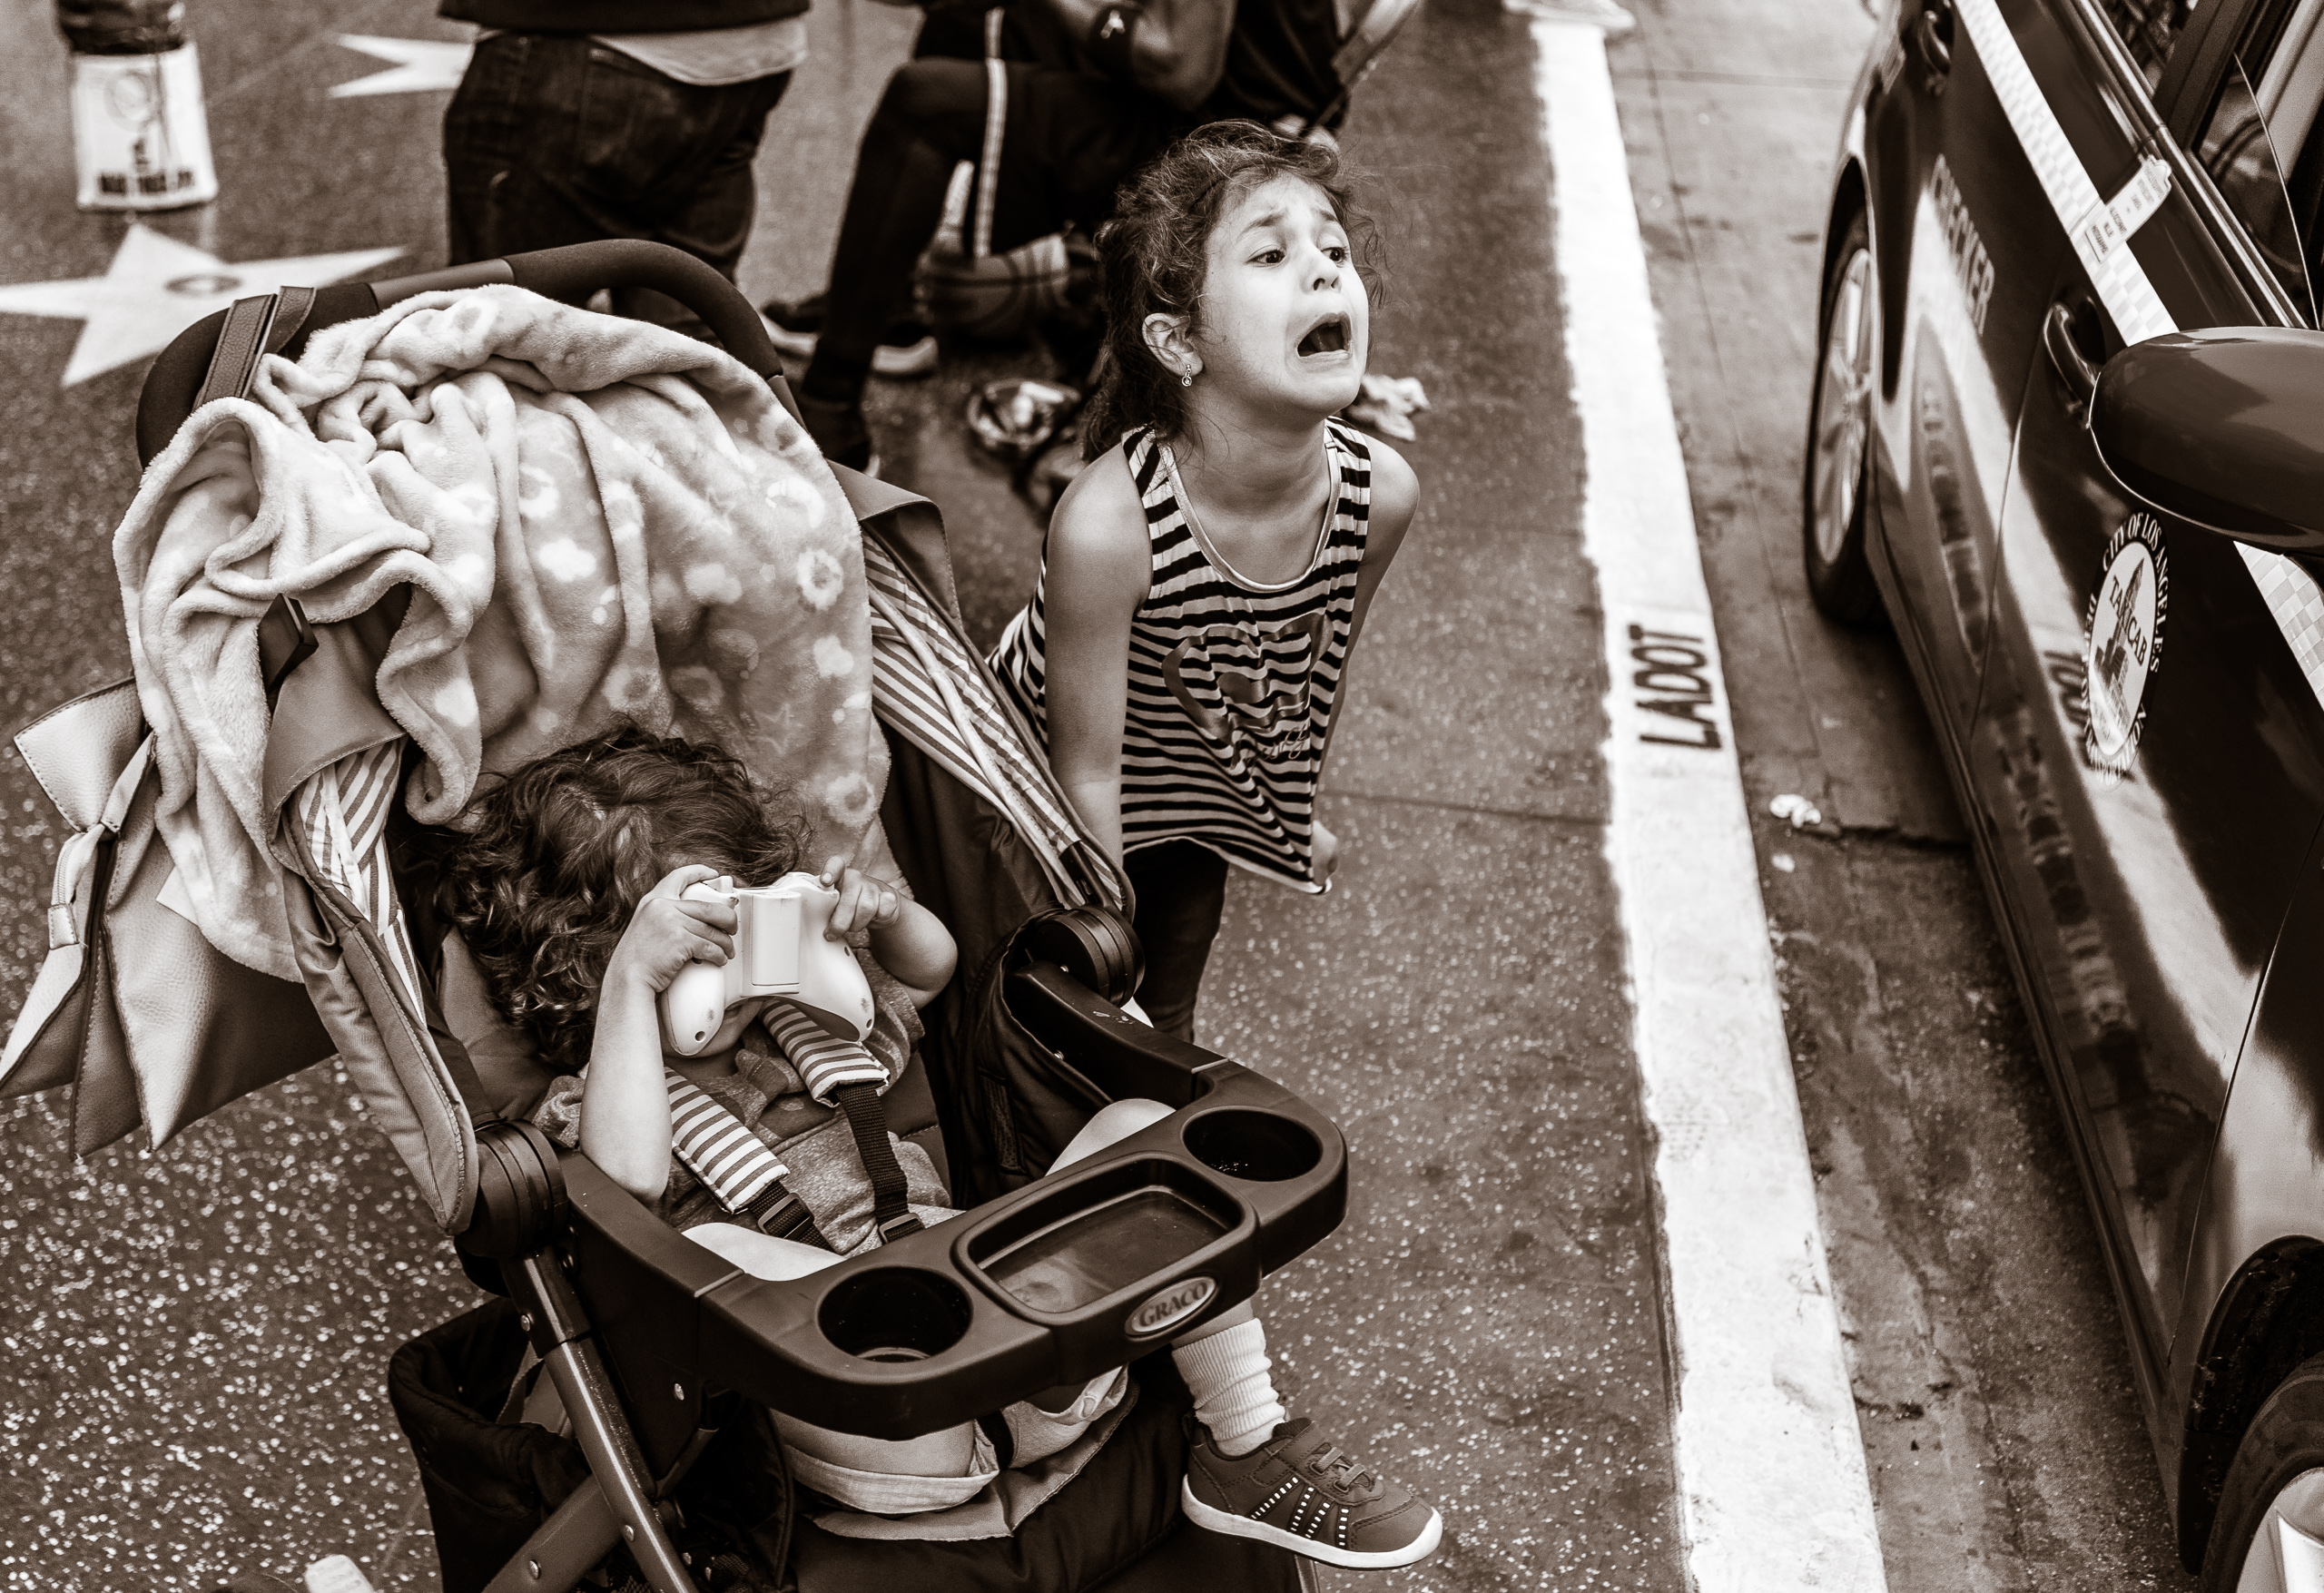 a young girl standing next to a stroller cries out in the direction of a curb-parked taxi cab